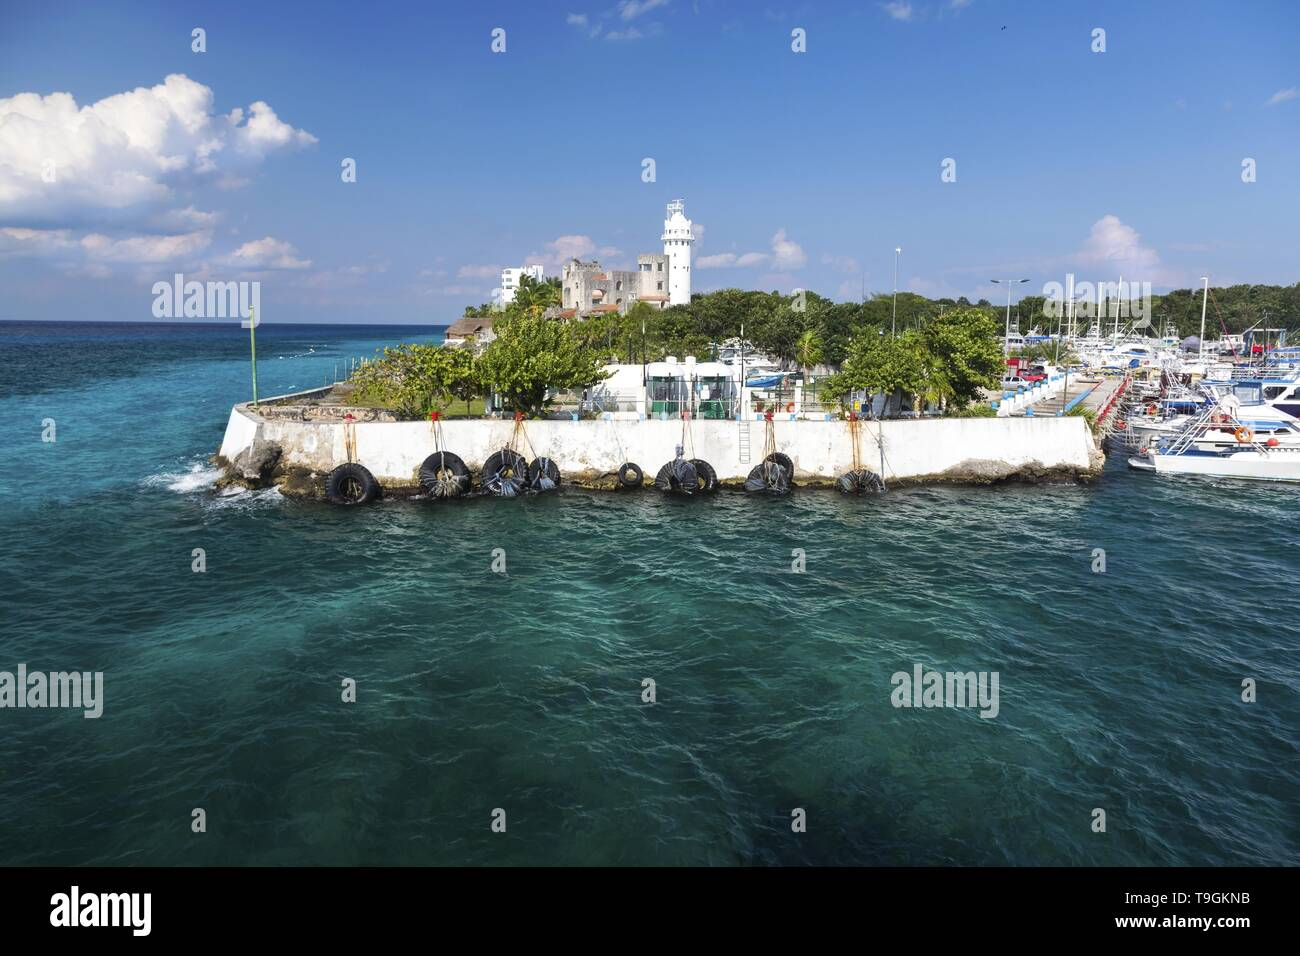 Puerto De Abrigo Sailing Ship Marina and Lighthouse over Blue Caribbean Sea Coastline on Tropical Island Cozumel Mexico Waterfront Stock Photo